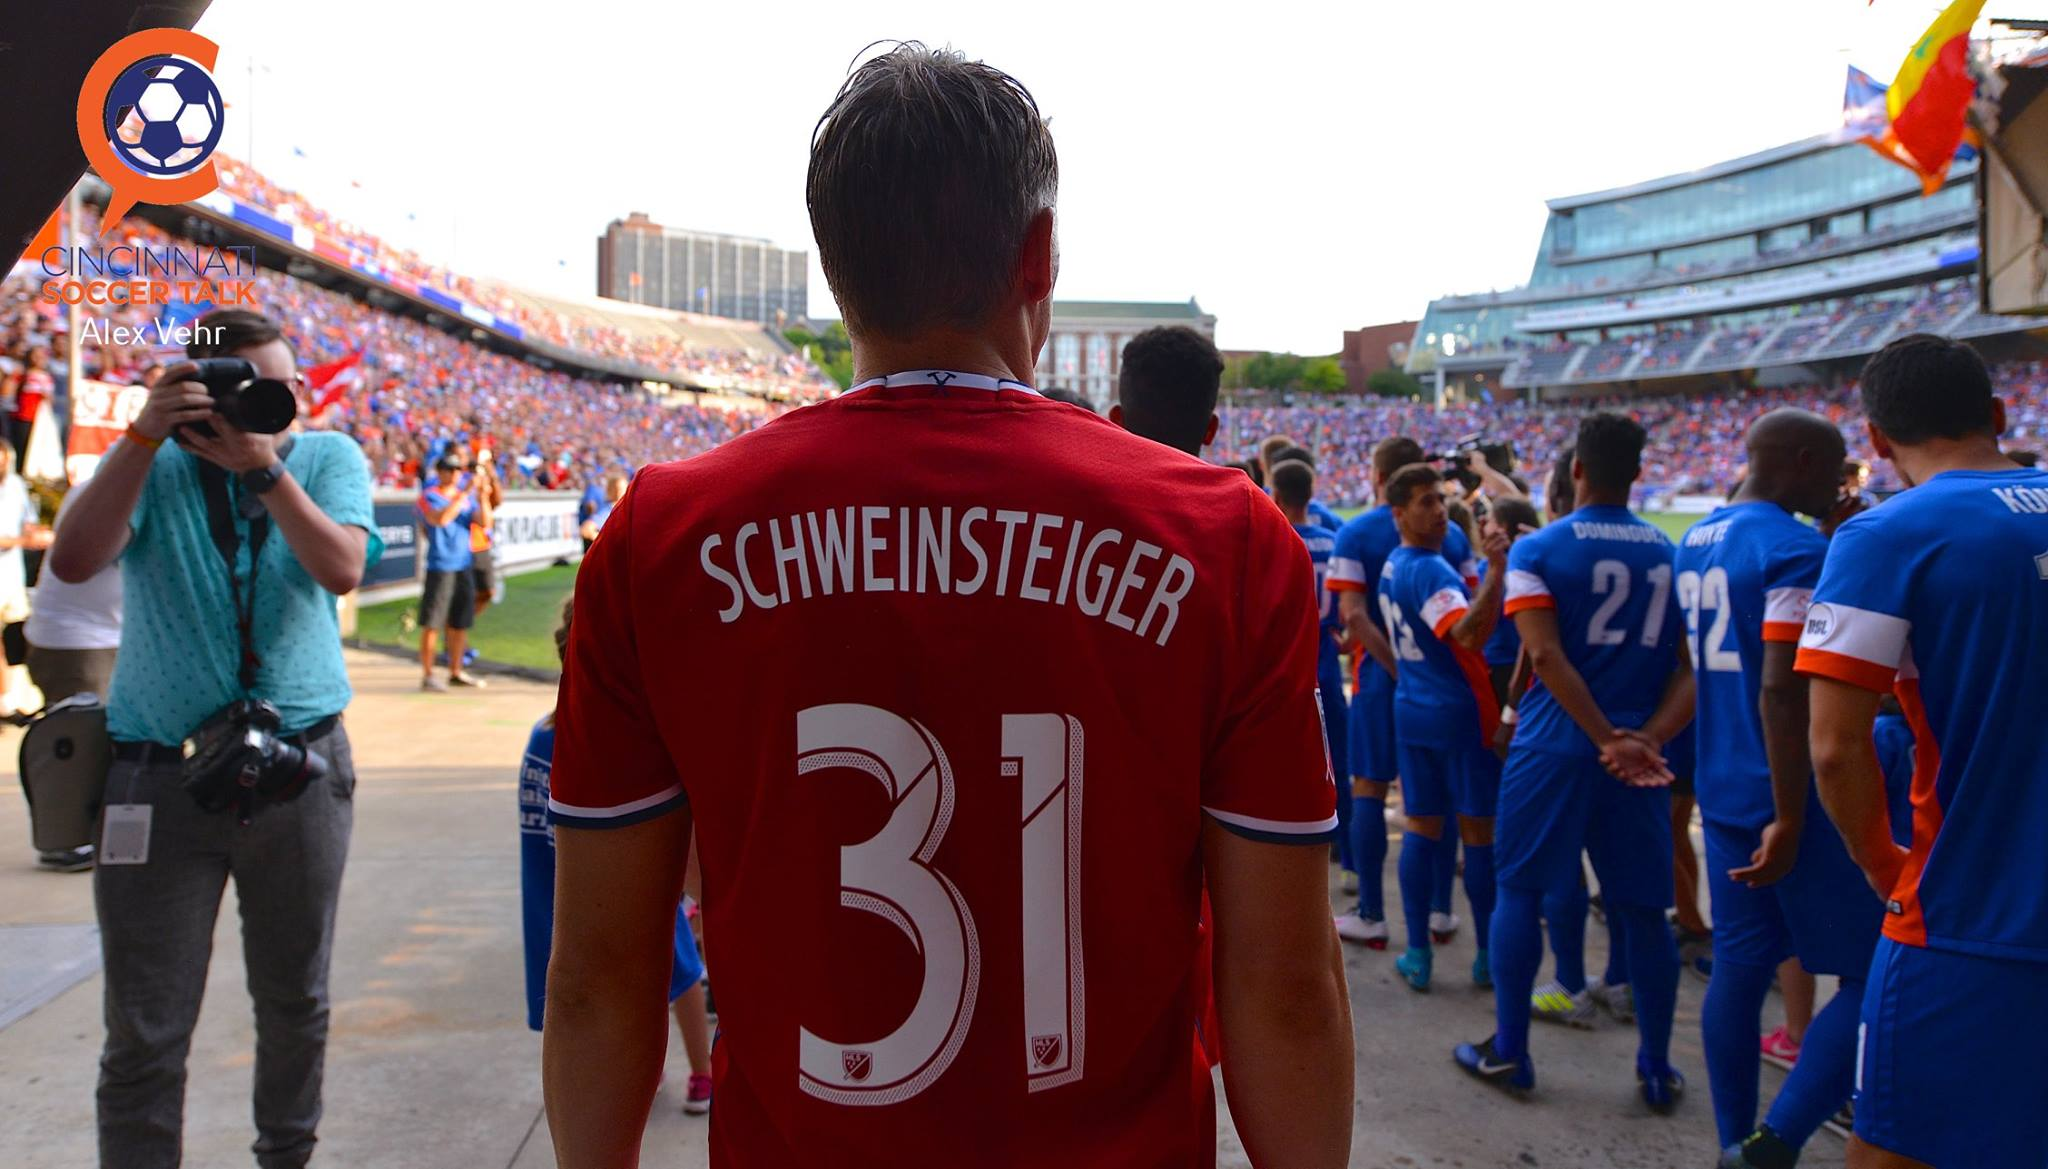 ed40c31e2 FC Cincinnati fans can see the stars at Nippert in 2019 - Cincinnati ...